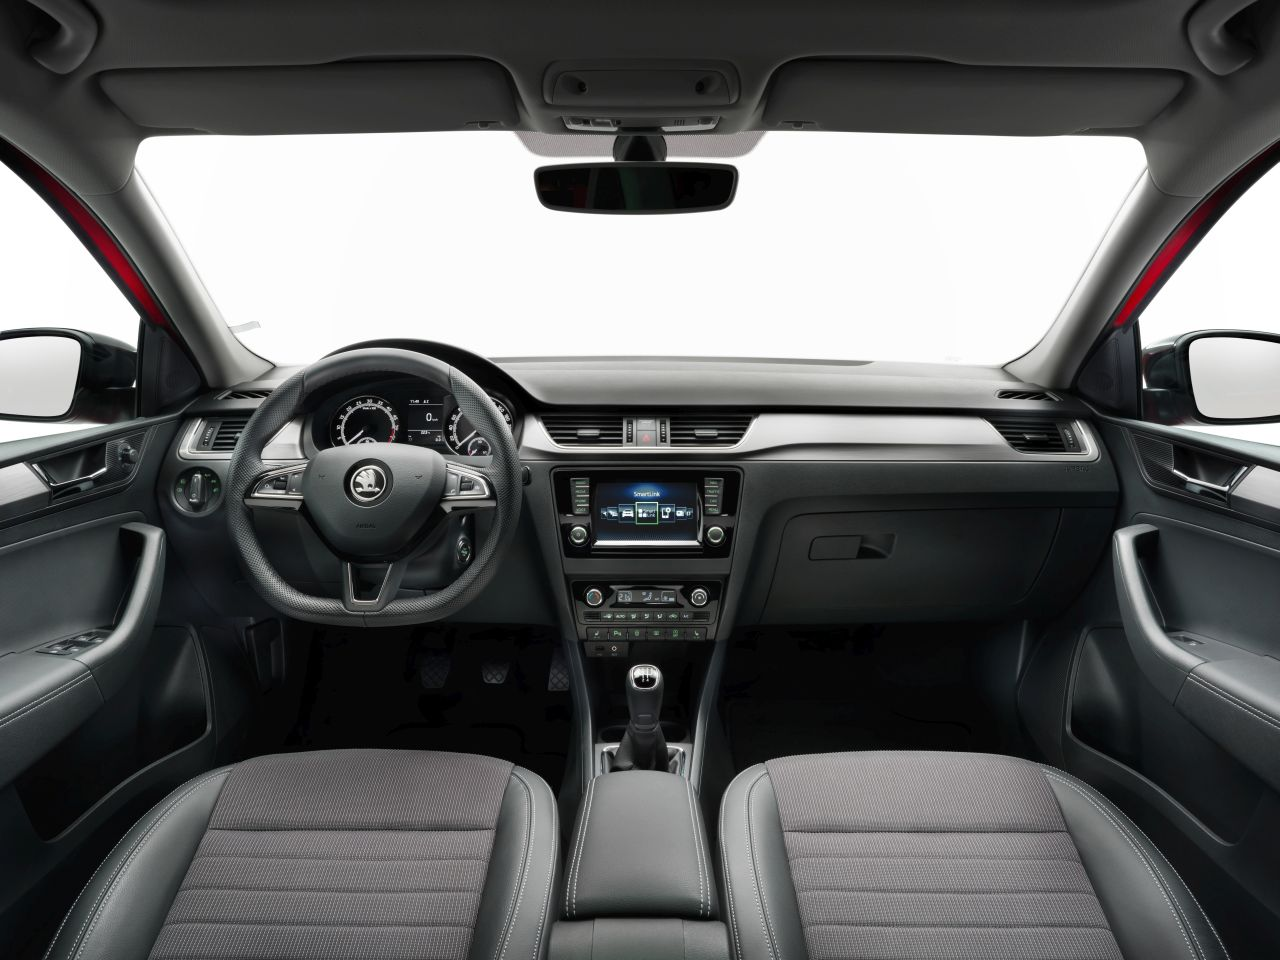 Skoda-Rapid-Spaceback-facelift-2017-01.jpg